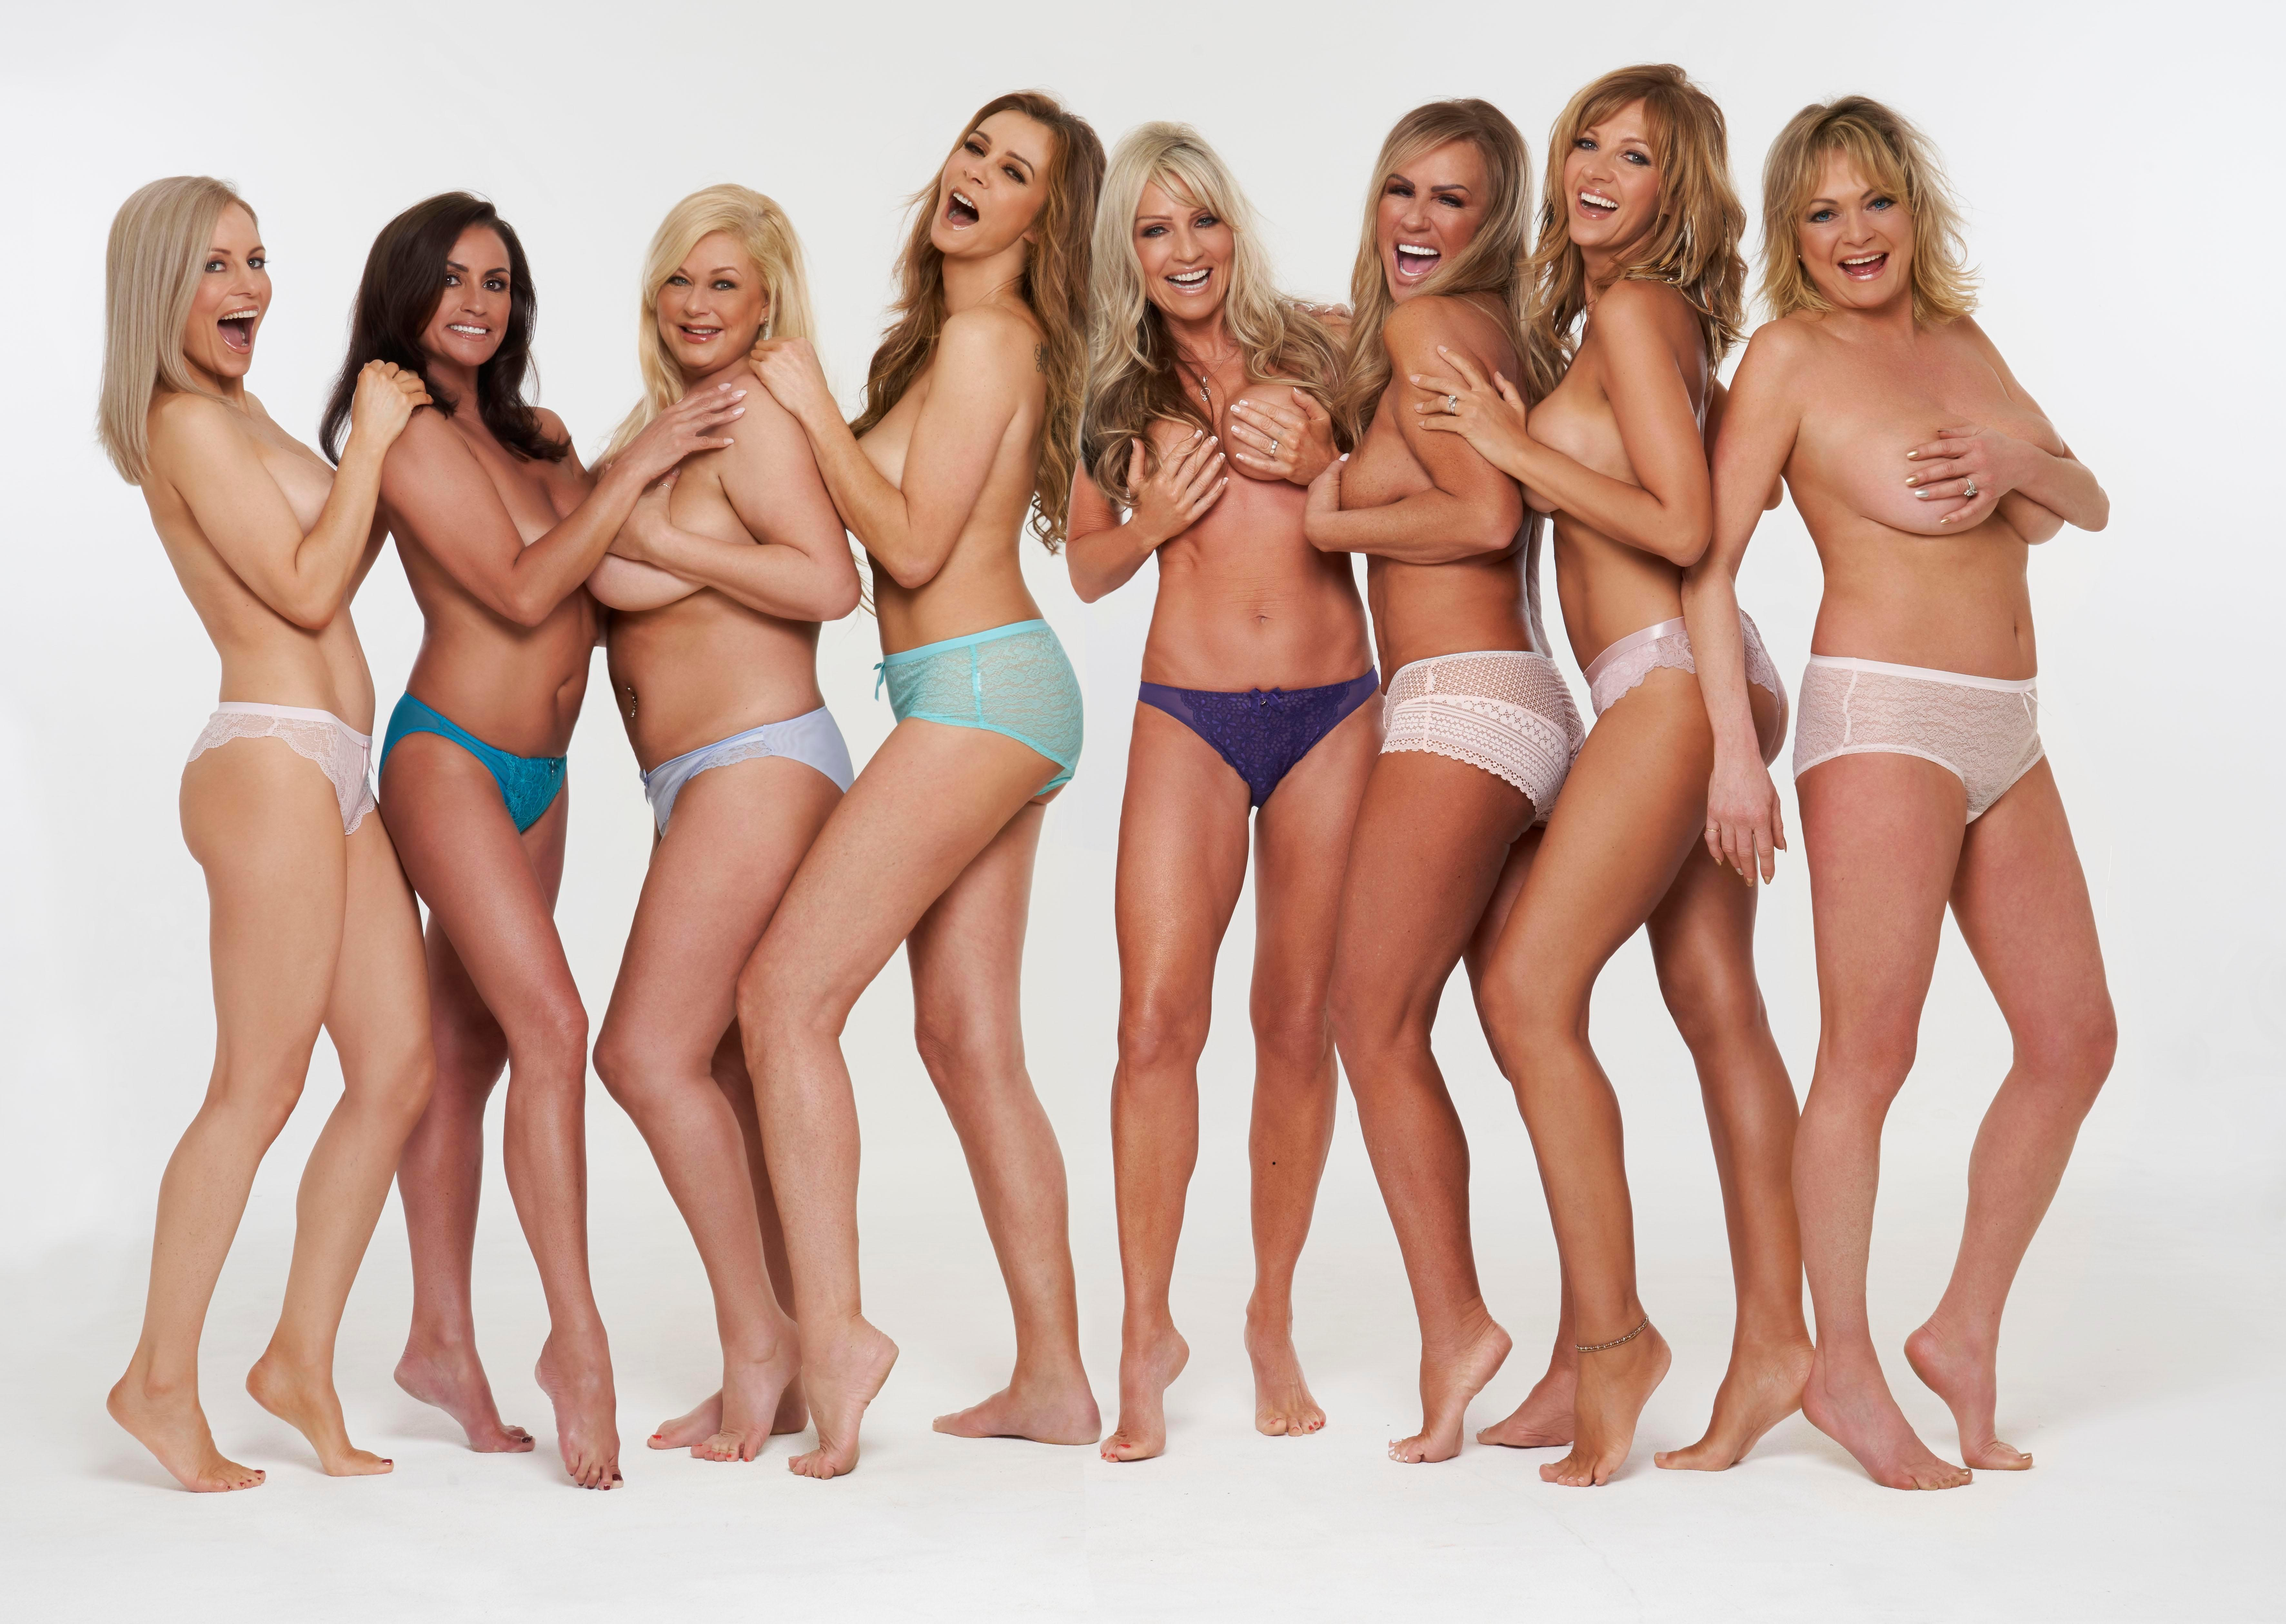 Page 3 Icons Bravely Dare To Bare 20 Years On To Raise Money Inside The Sun Page 3 Girls 2020 Calendar